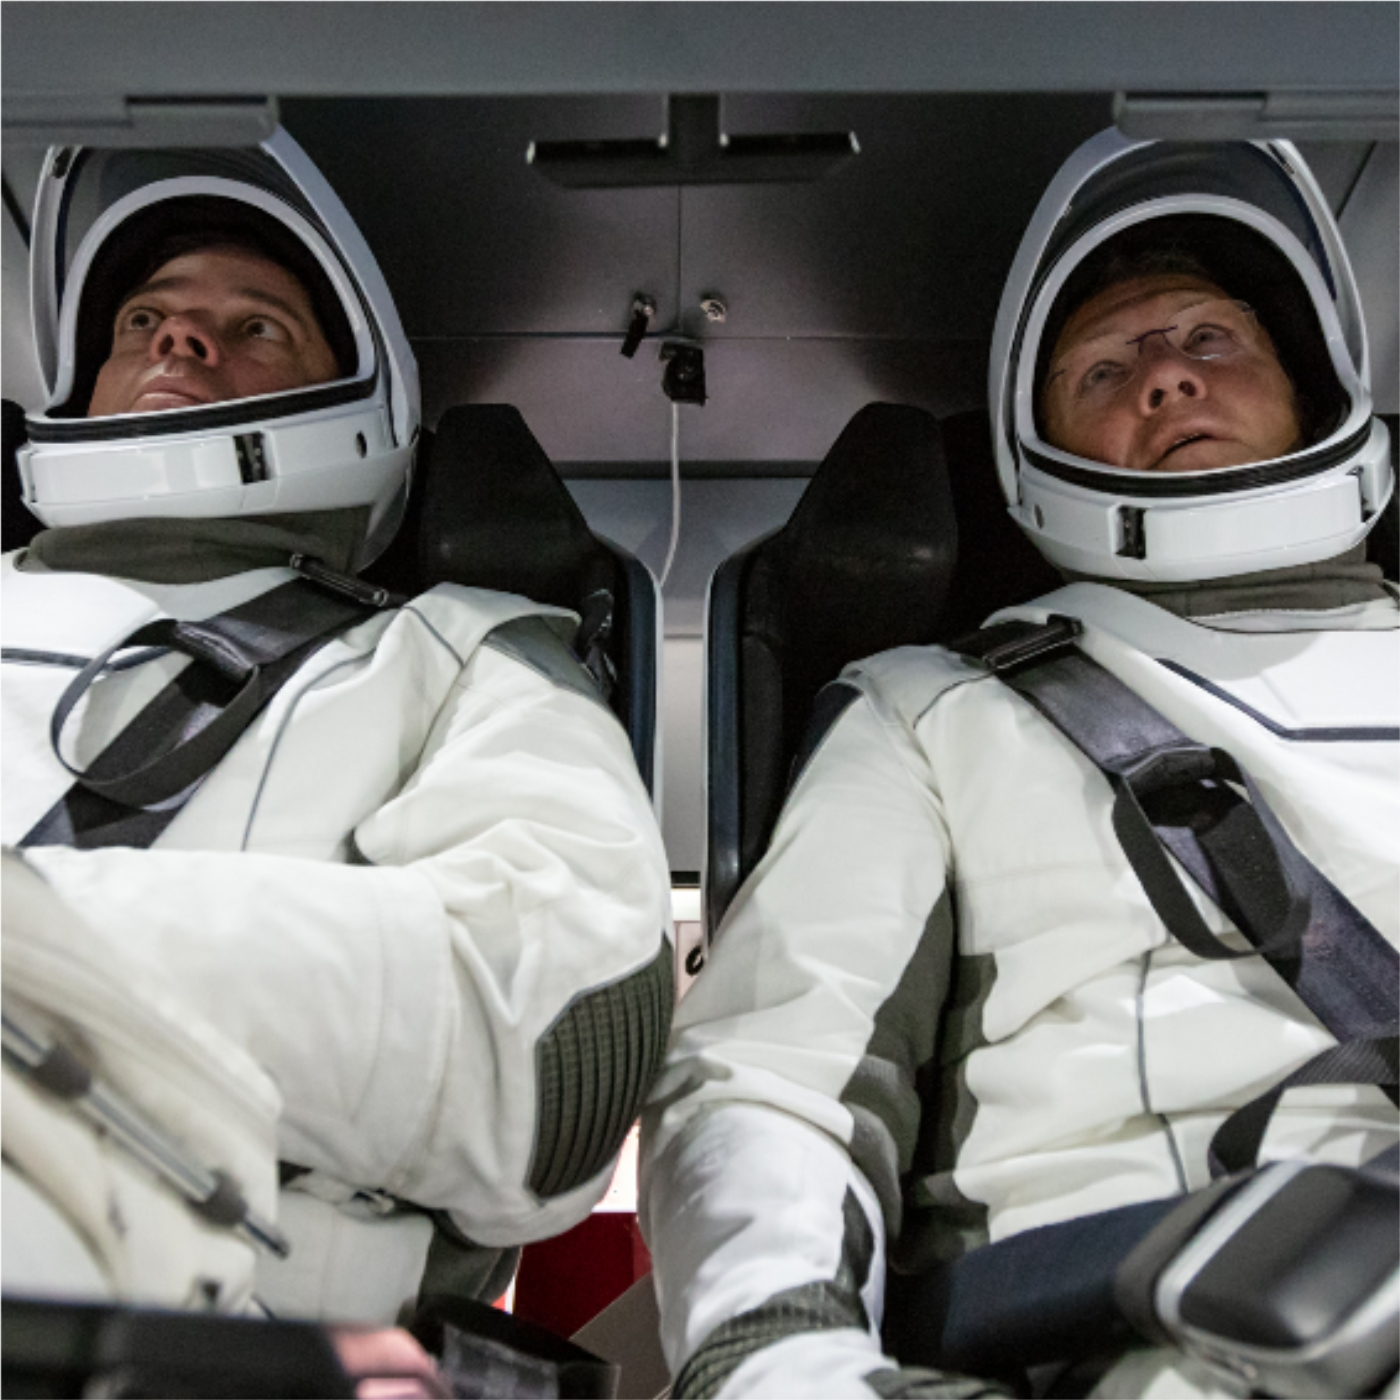 Caption: NASA astronauts Doug Hurley and Bob Behnken familiarize themselves with SpaceX's Crew Dragon, the spacecraft that will transport them to the International Space Station as part of NASA's Commercial Crew Program. , Credit: NASA